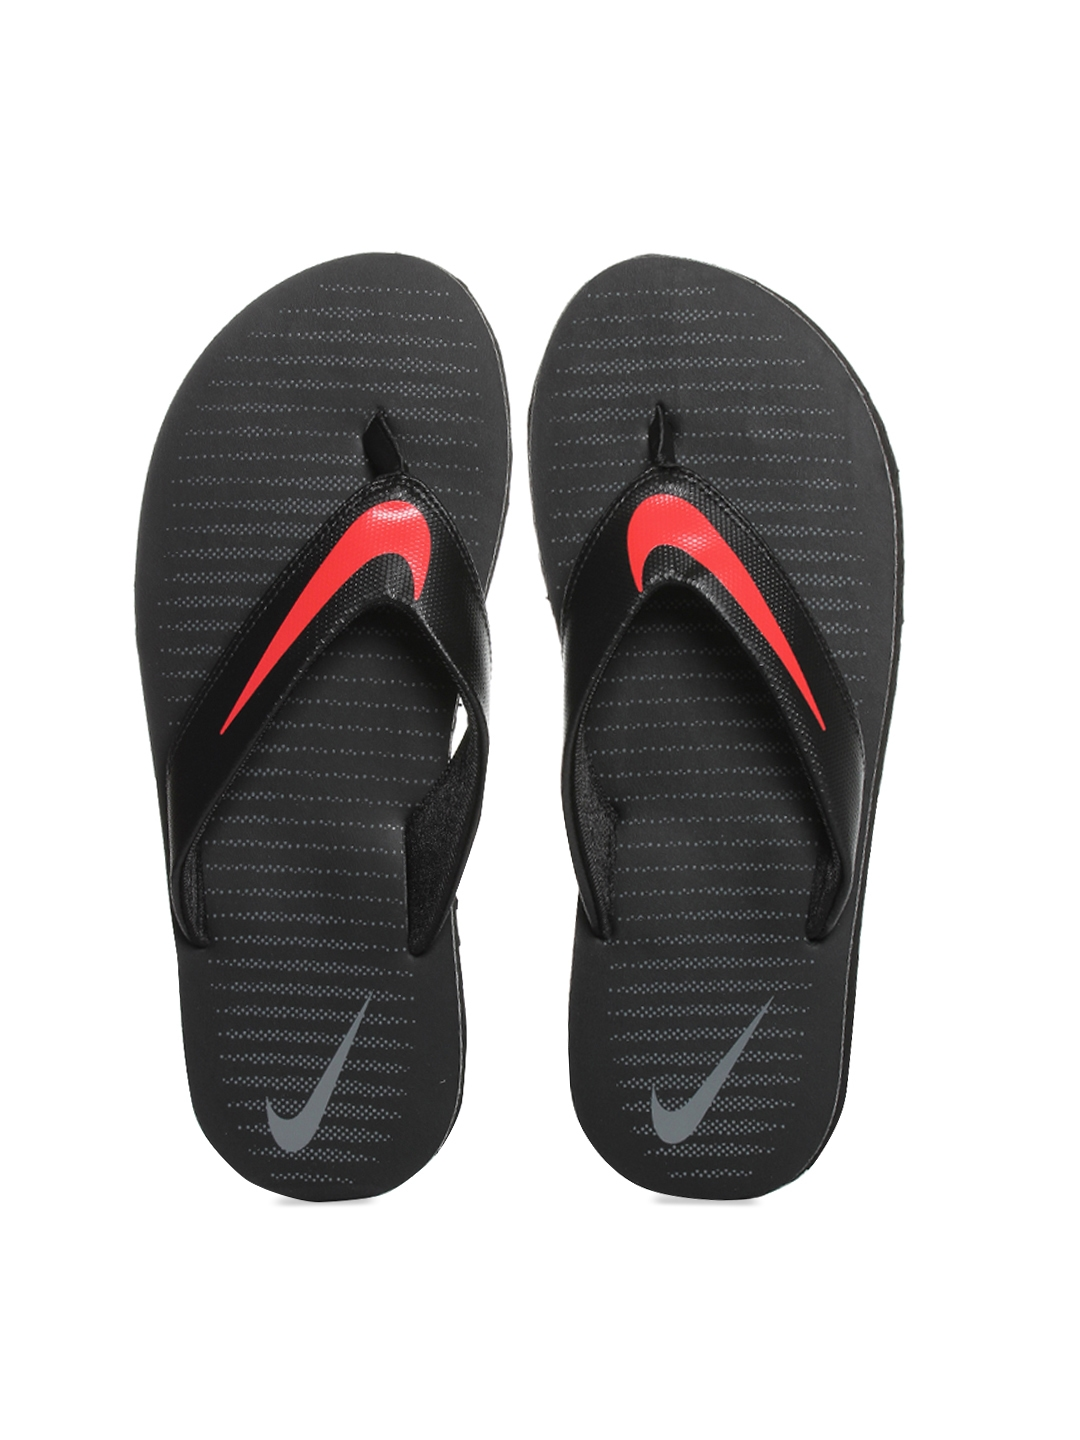 discount store Nike Air thong 5 Black Thong Flip Flop affordable sale online FsLOQF